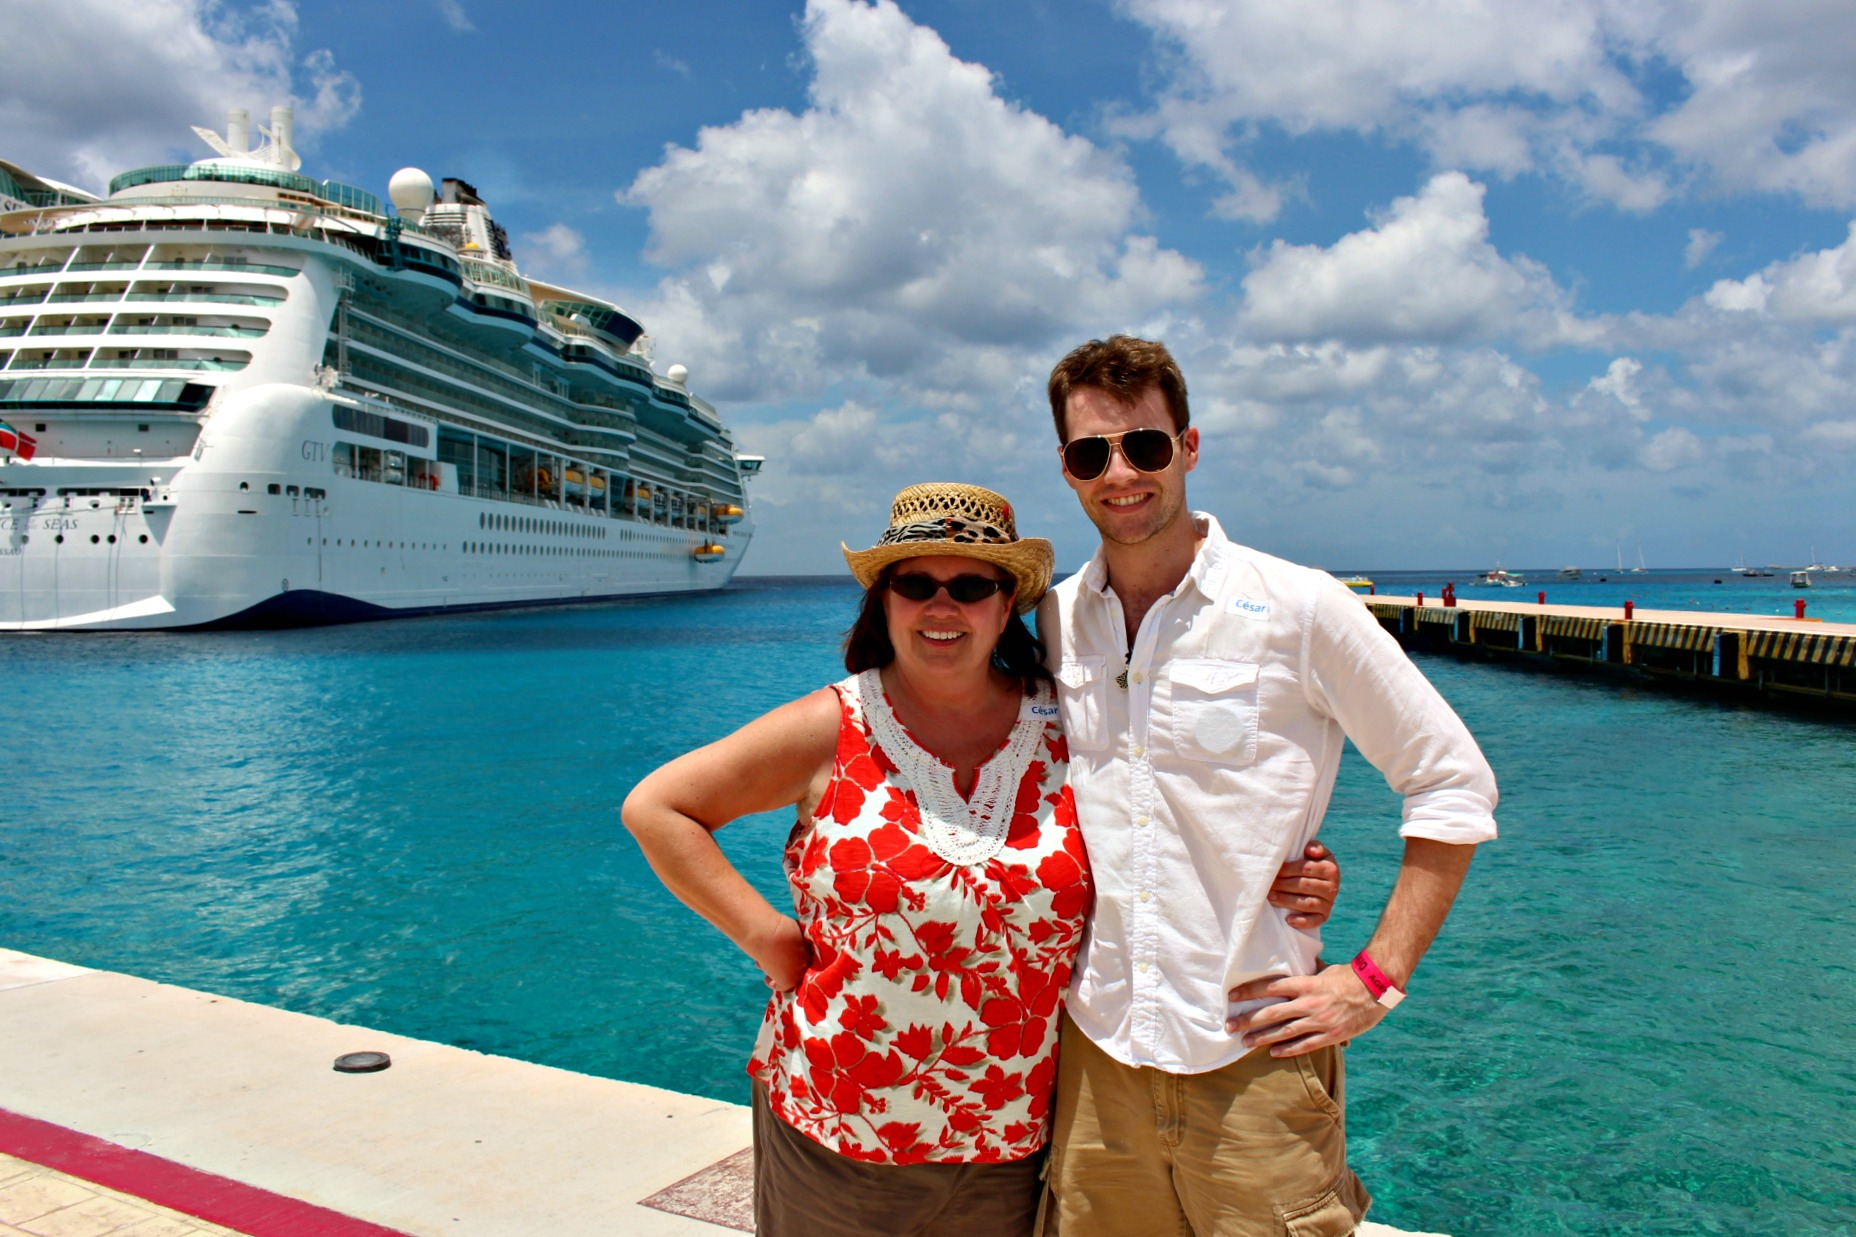 My mom and I had a great time on our cruise!